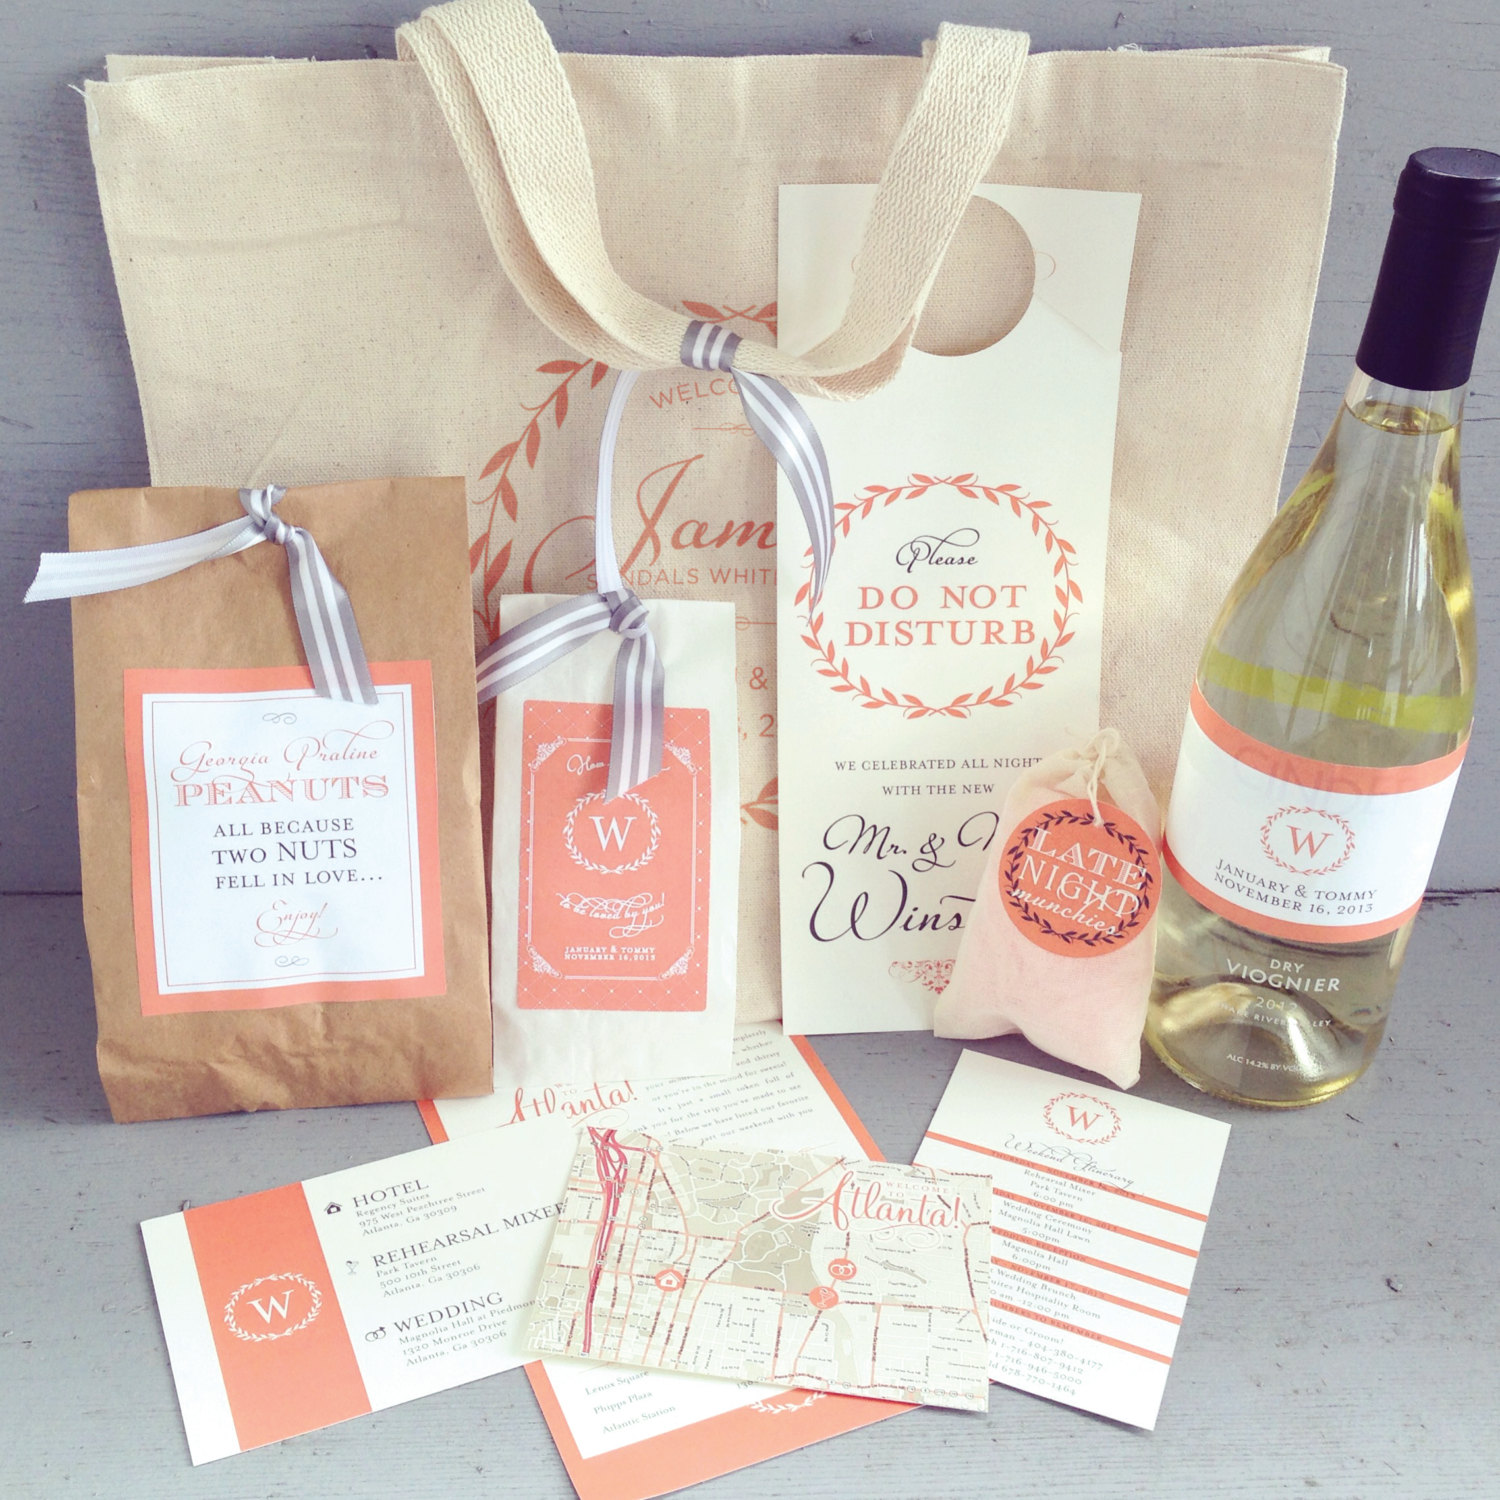 Wedding Welcome Bags - What Goes In Them? - Wedding for $1000